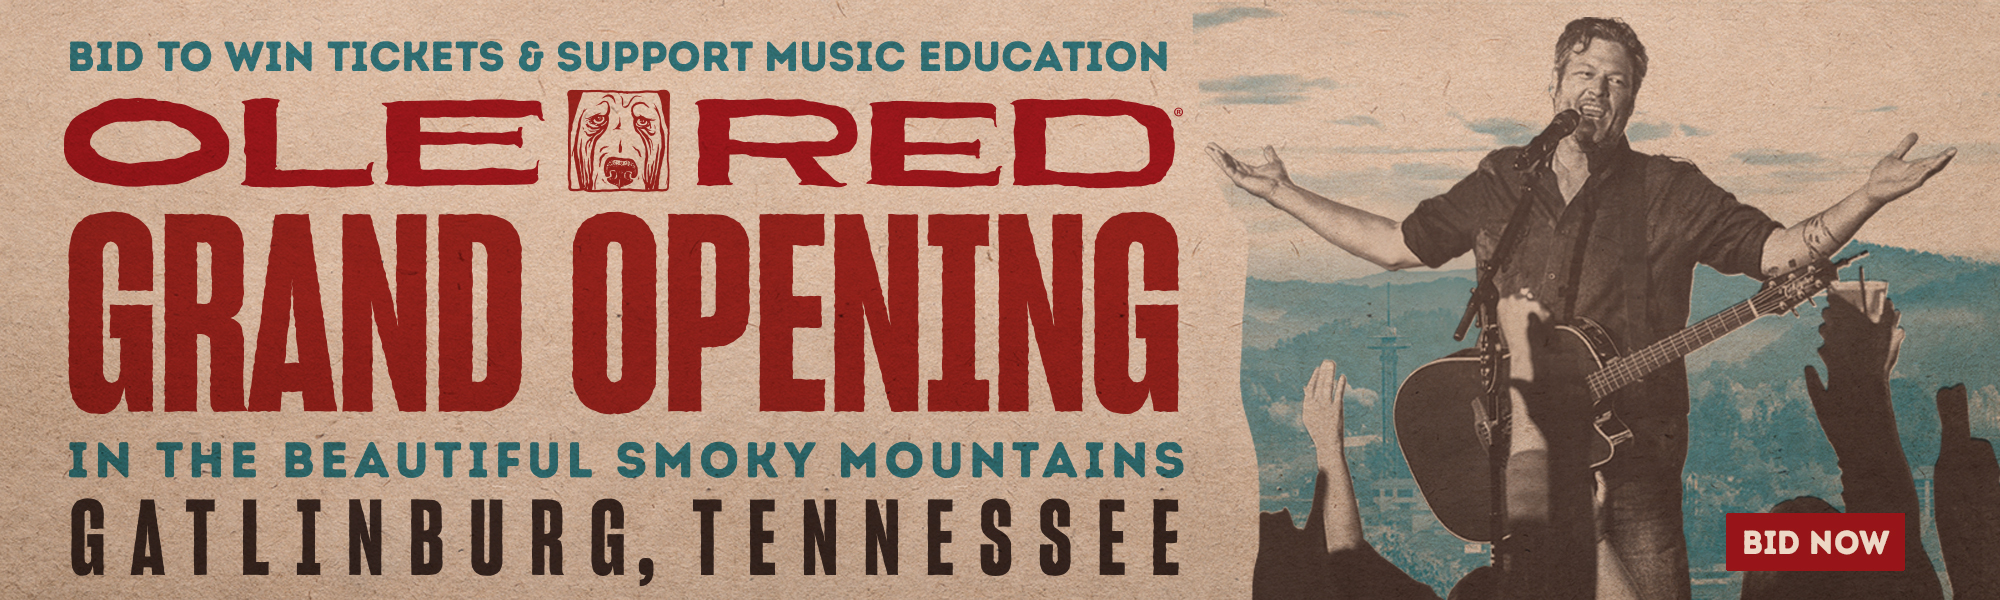 Ole red gatlinburg grand opening ticket auction - Div style justify ...